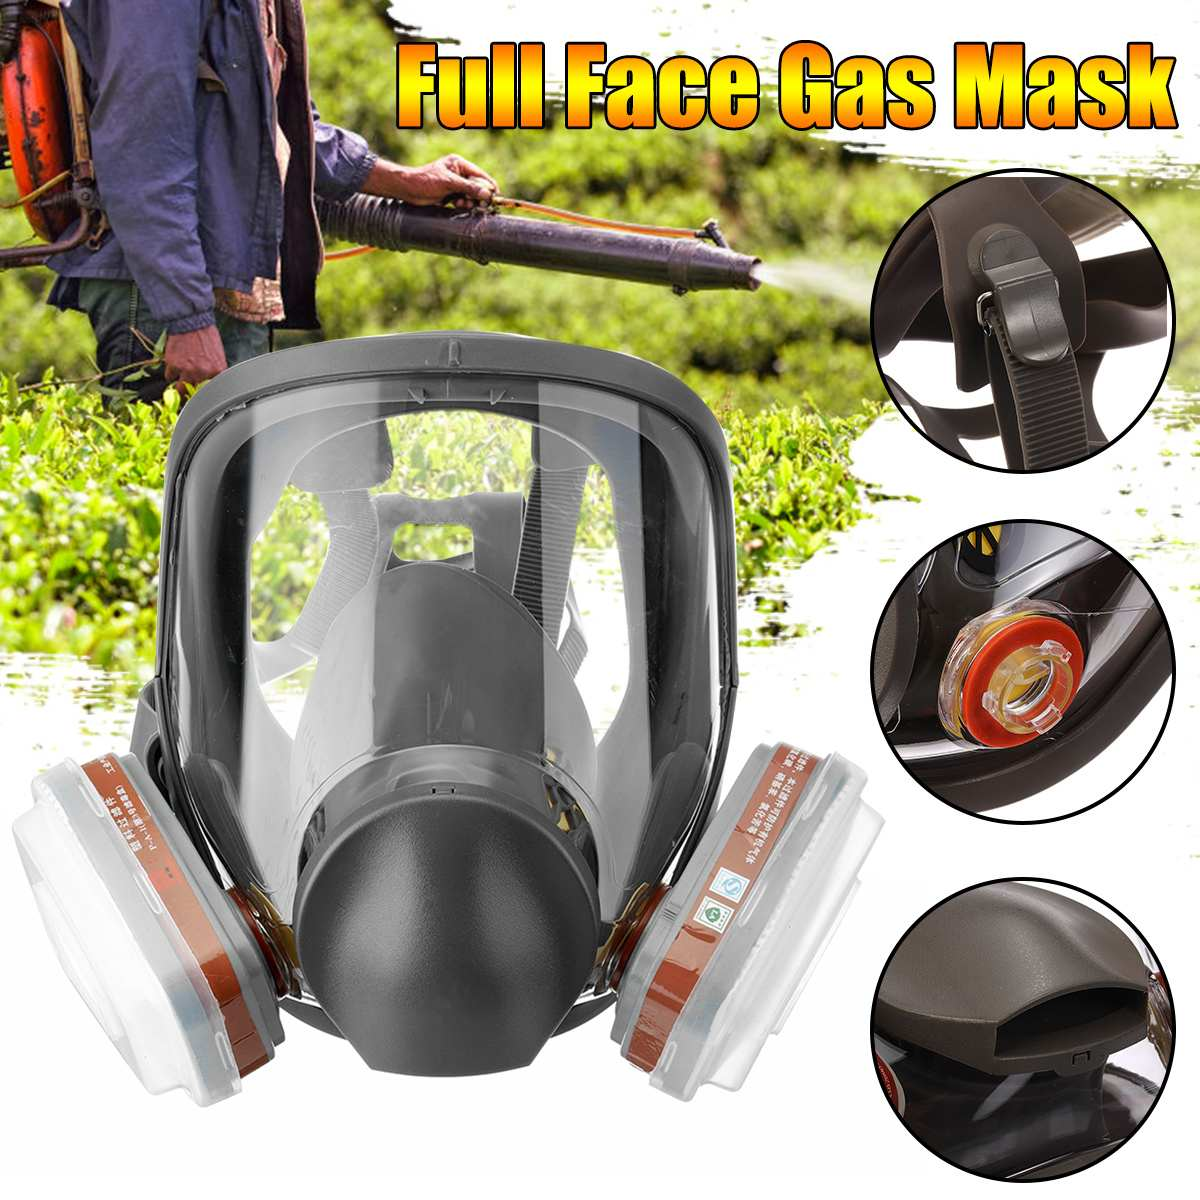 7 IN 1 Large View For 6800 Gas Mask Full Face Facepiece Painting Spraying Respirator For Gas Mask Respirator Filterg Spraying